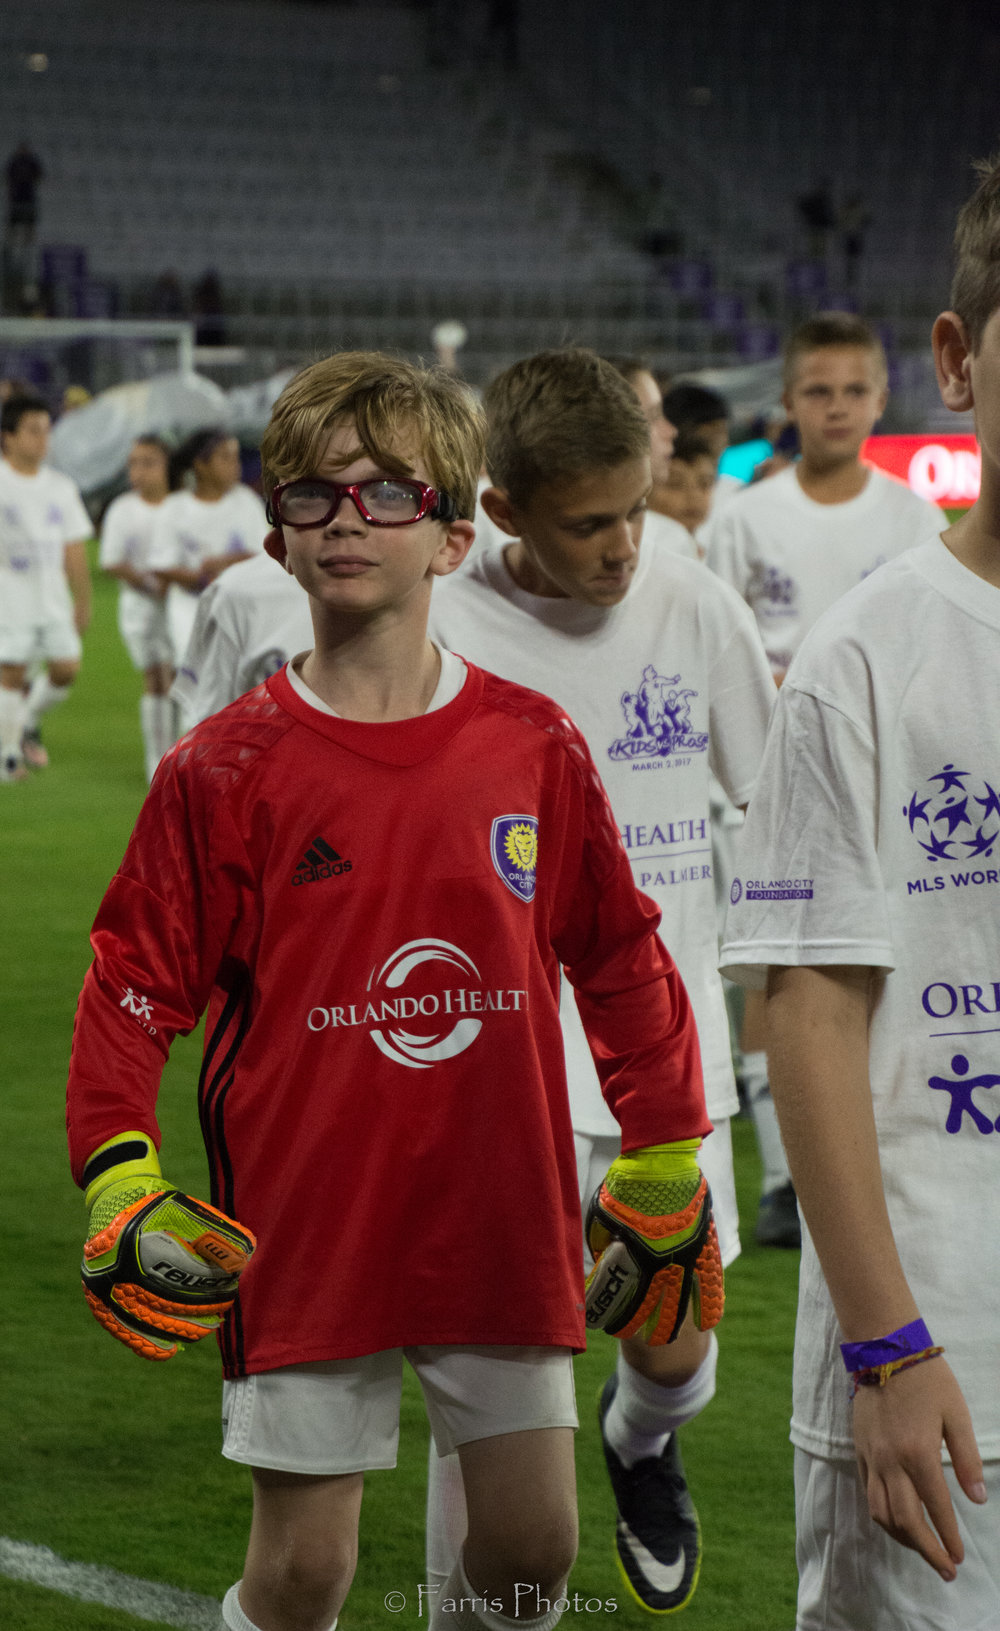 Kids vs. Pros Match Thursday, March 2, 2017 at the brand new Orlando City Stadium. PC: FARRIS PHOTOS